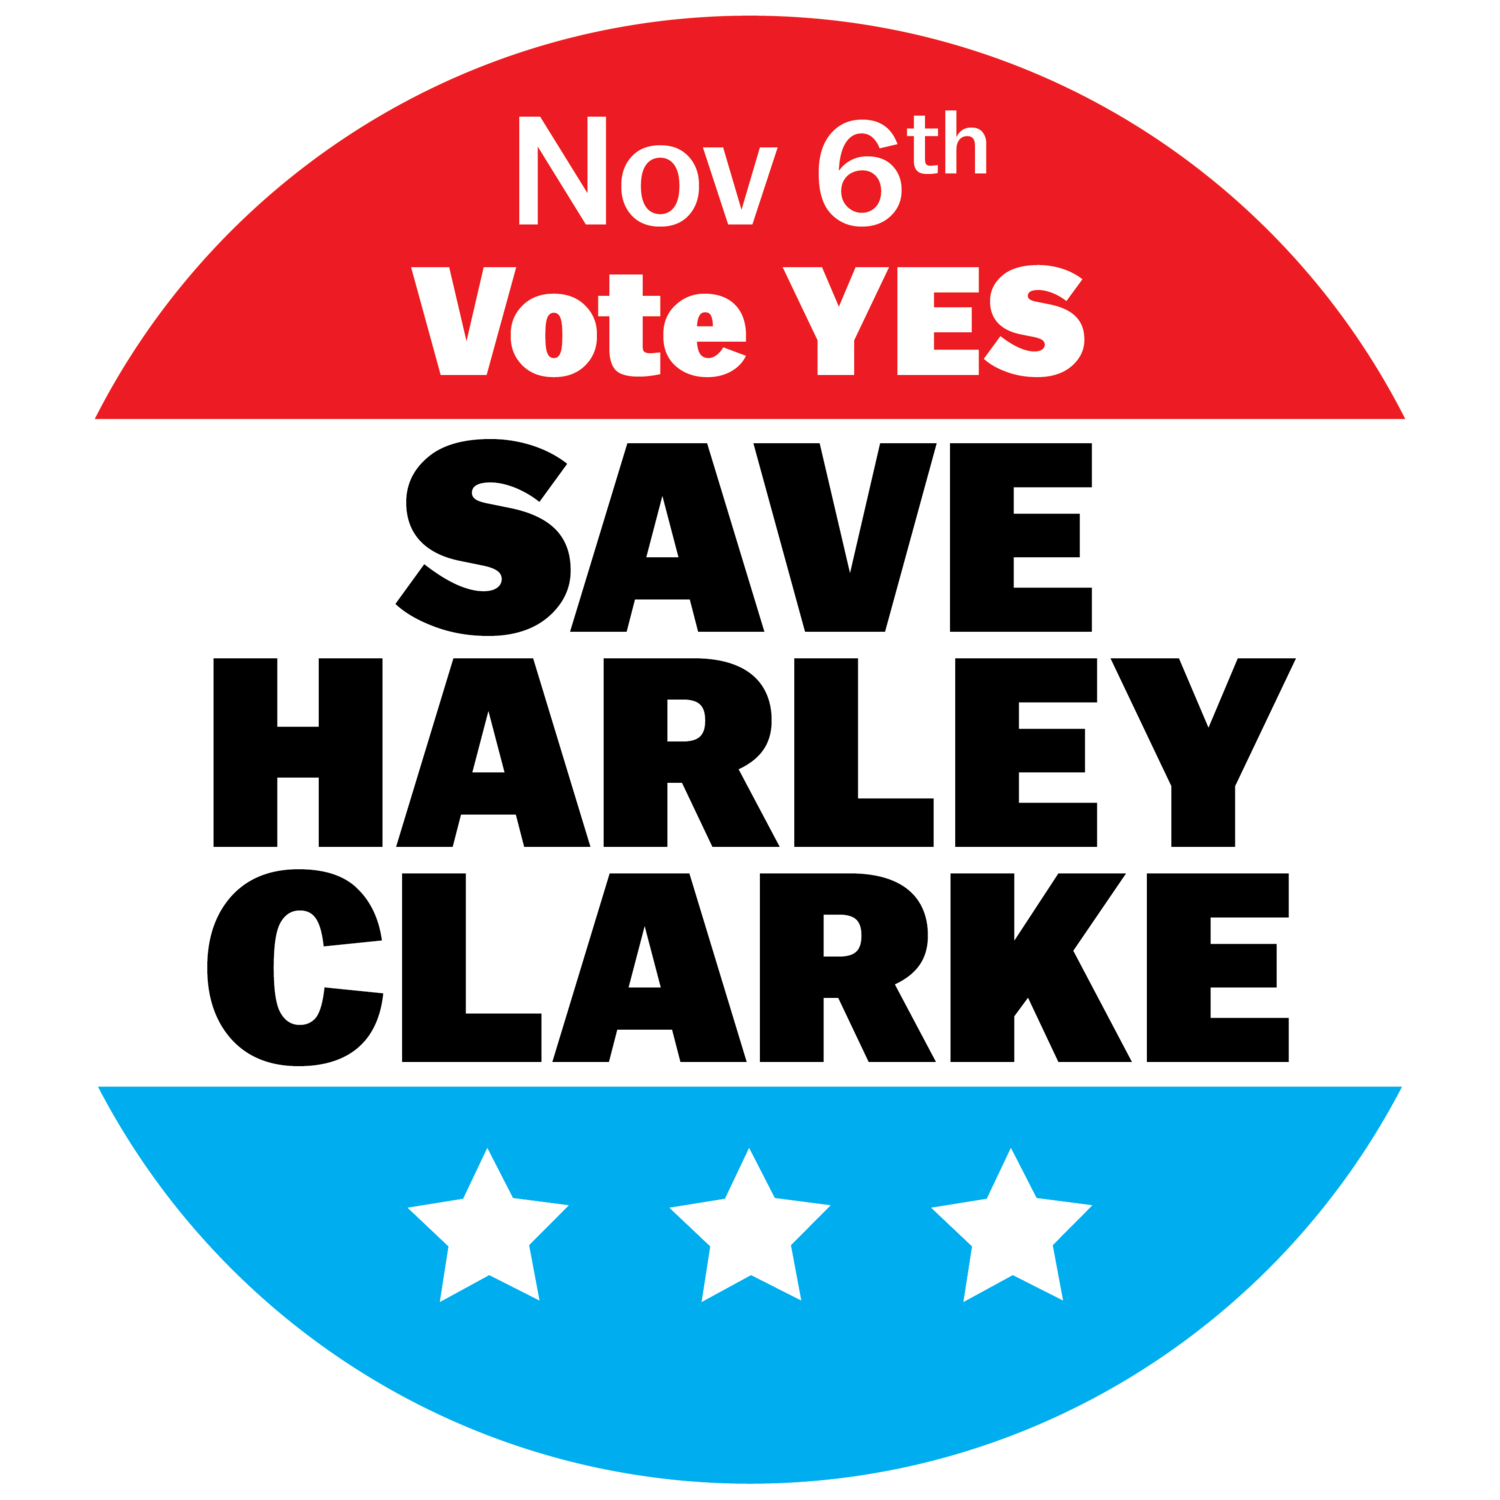 Save Harley Clarke